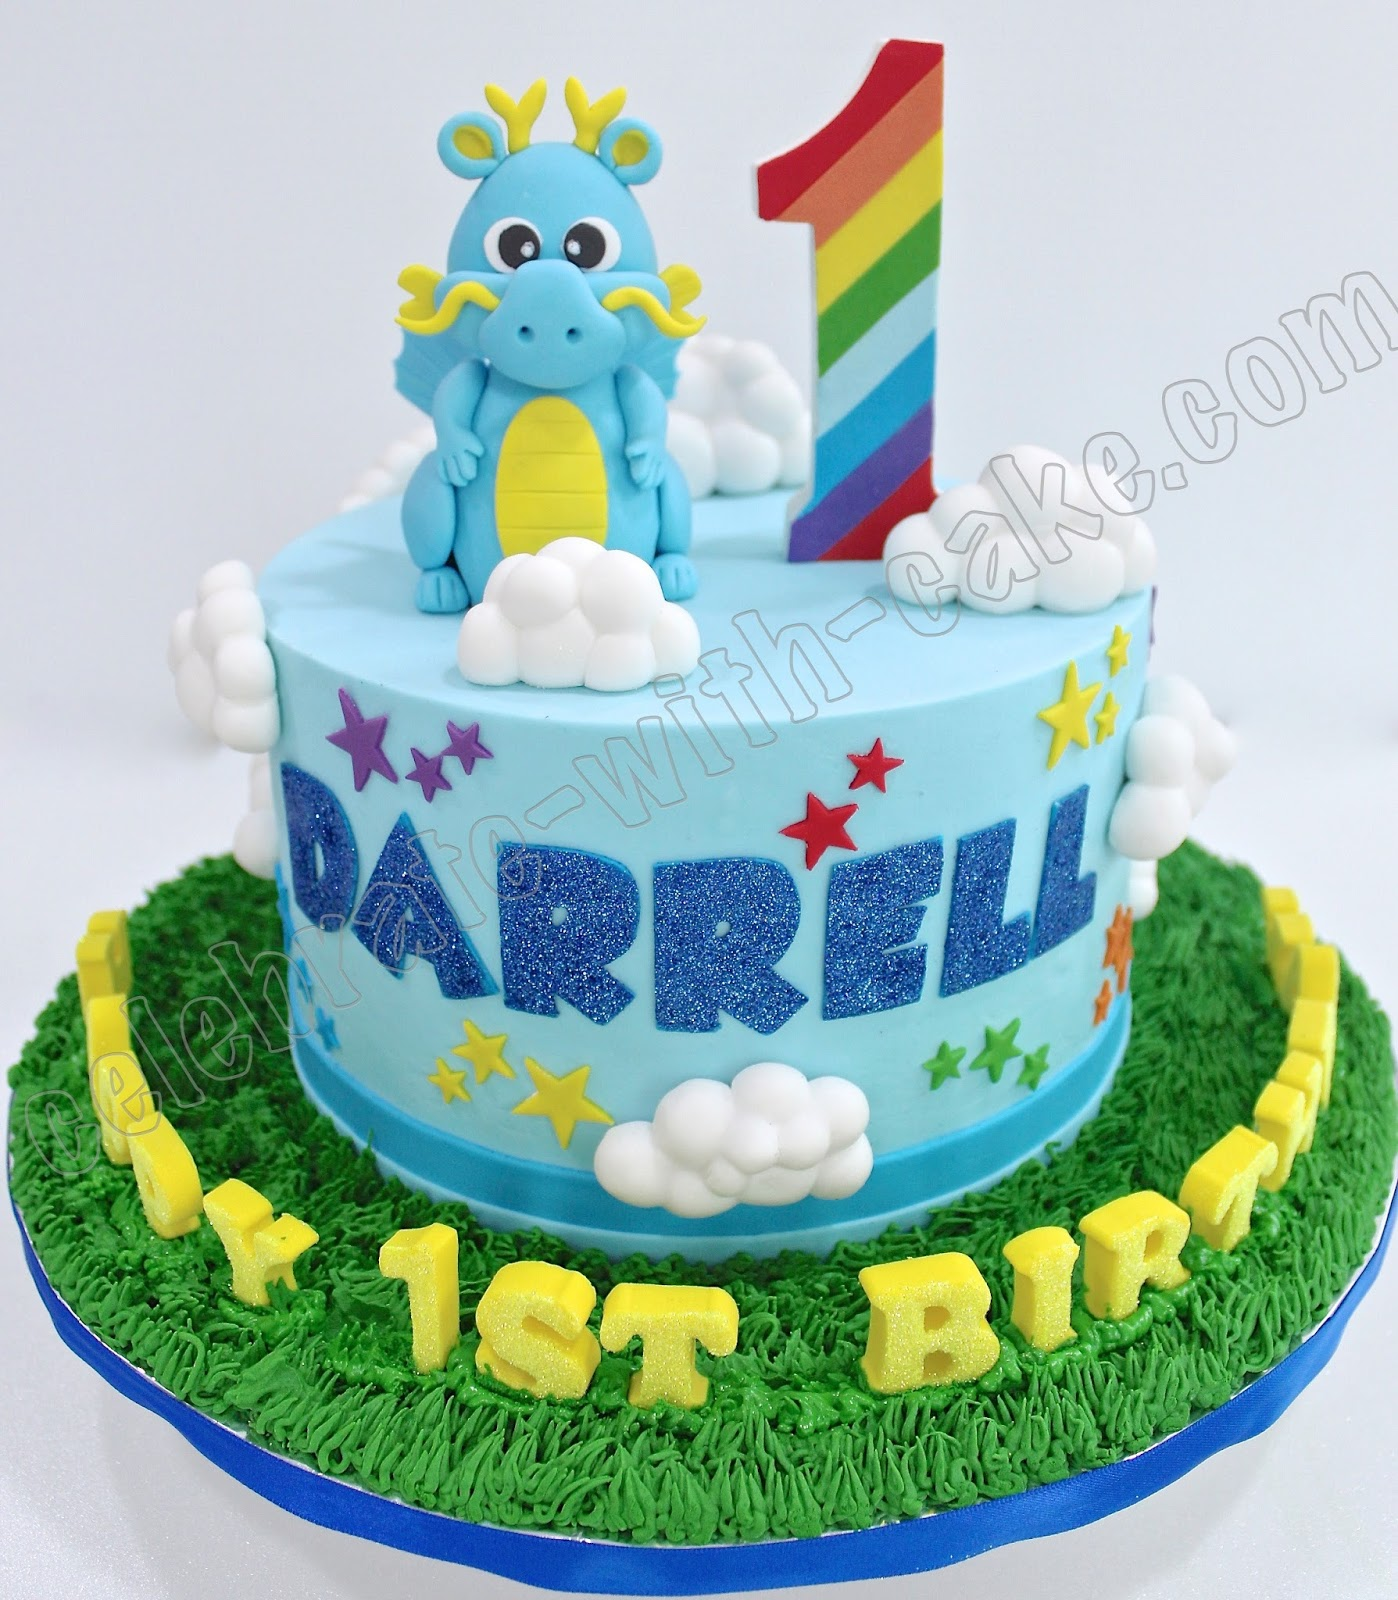 Celebrate With Cake 1st Birthday Baby Dragon Cake